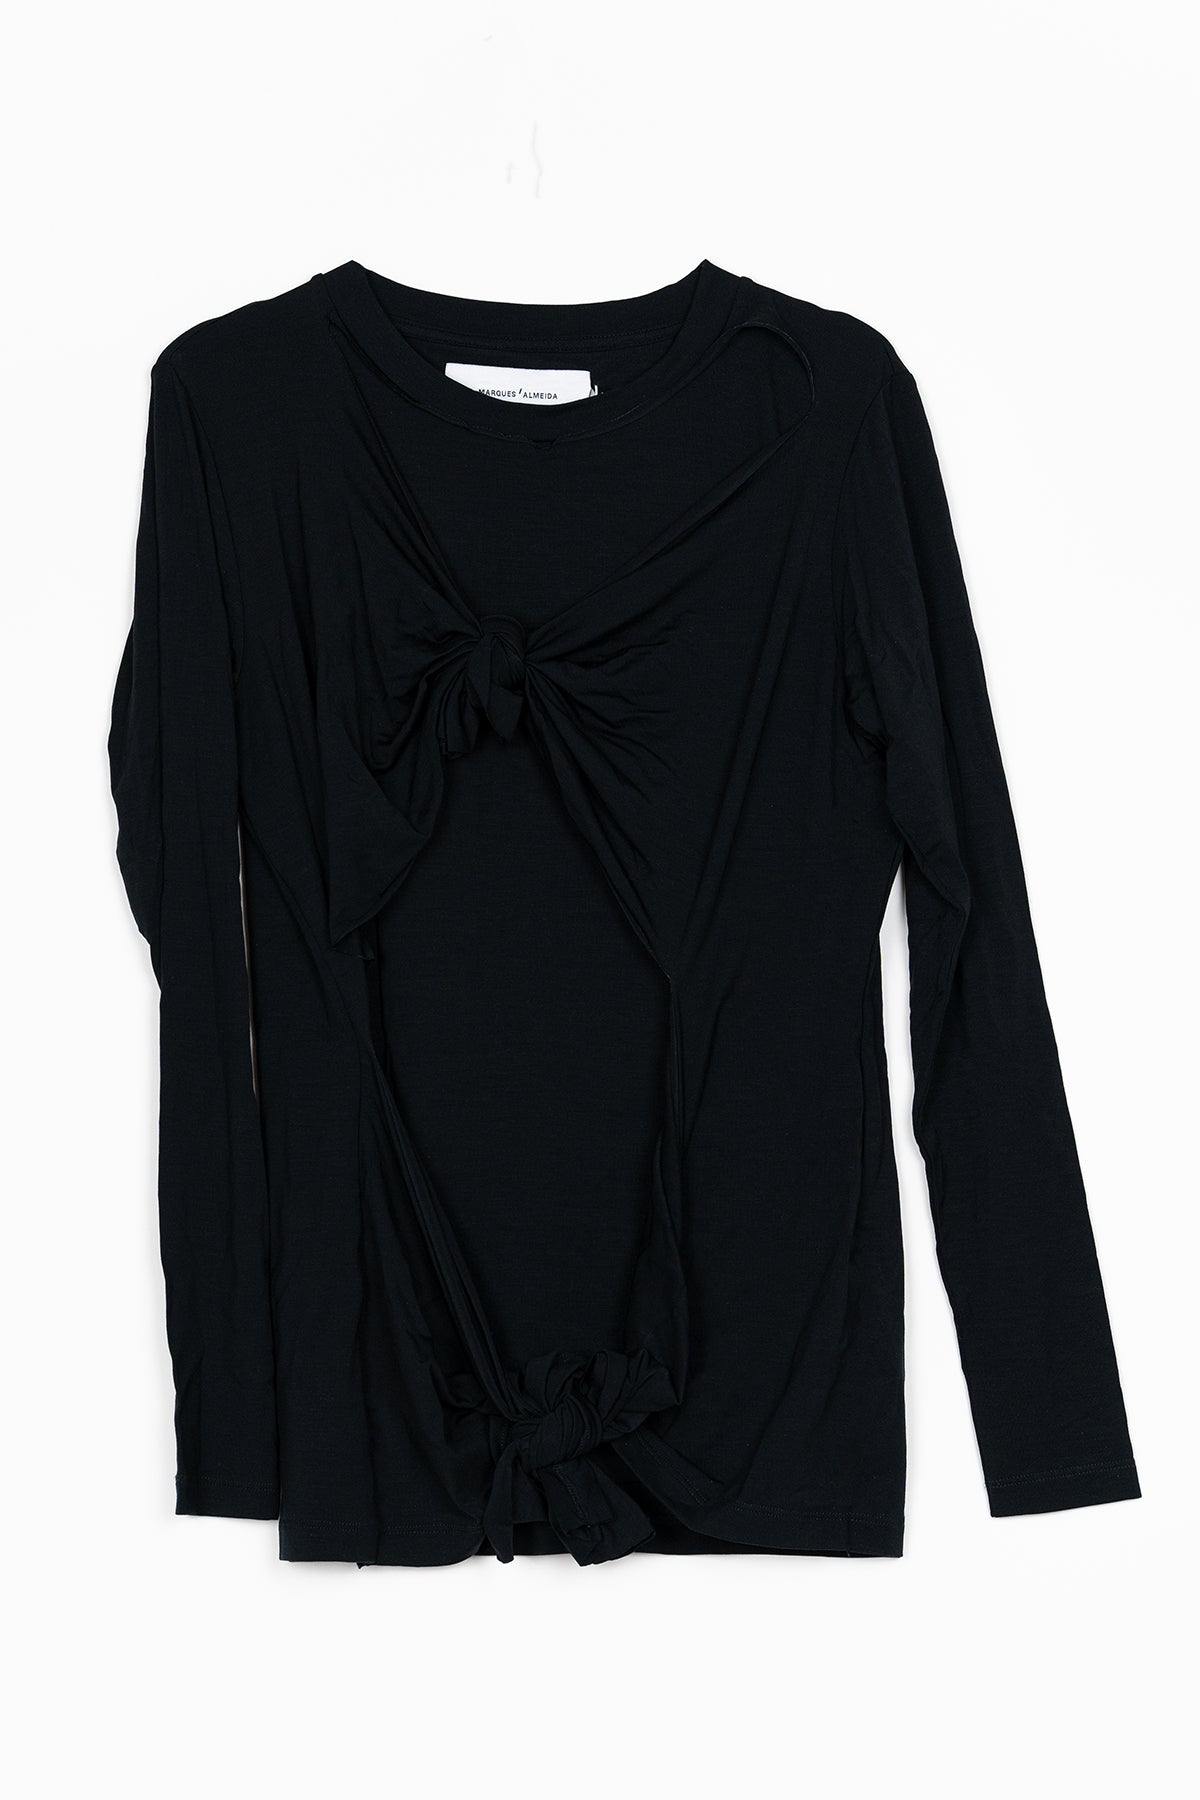 BLACK DOUBLE KNOT LONG SLEEVE T-SHIRT  marques almeida